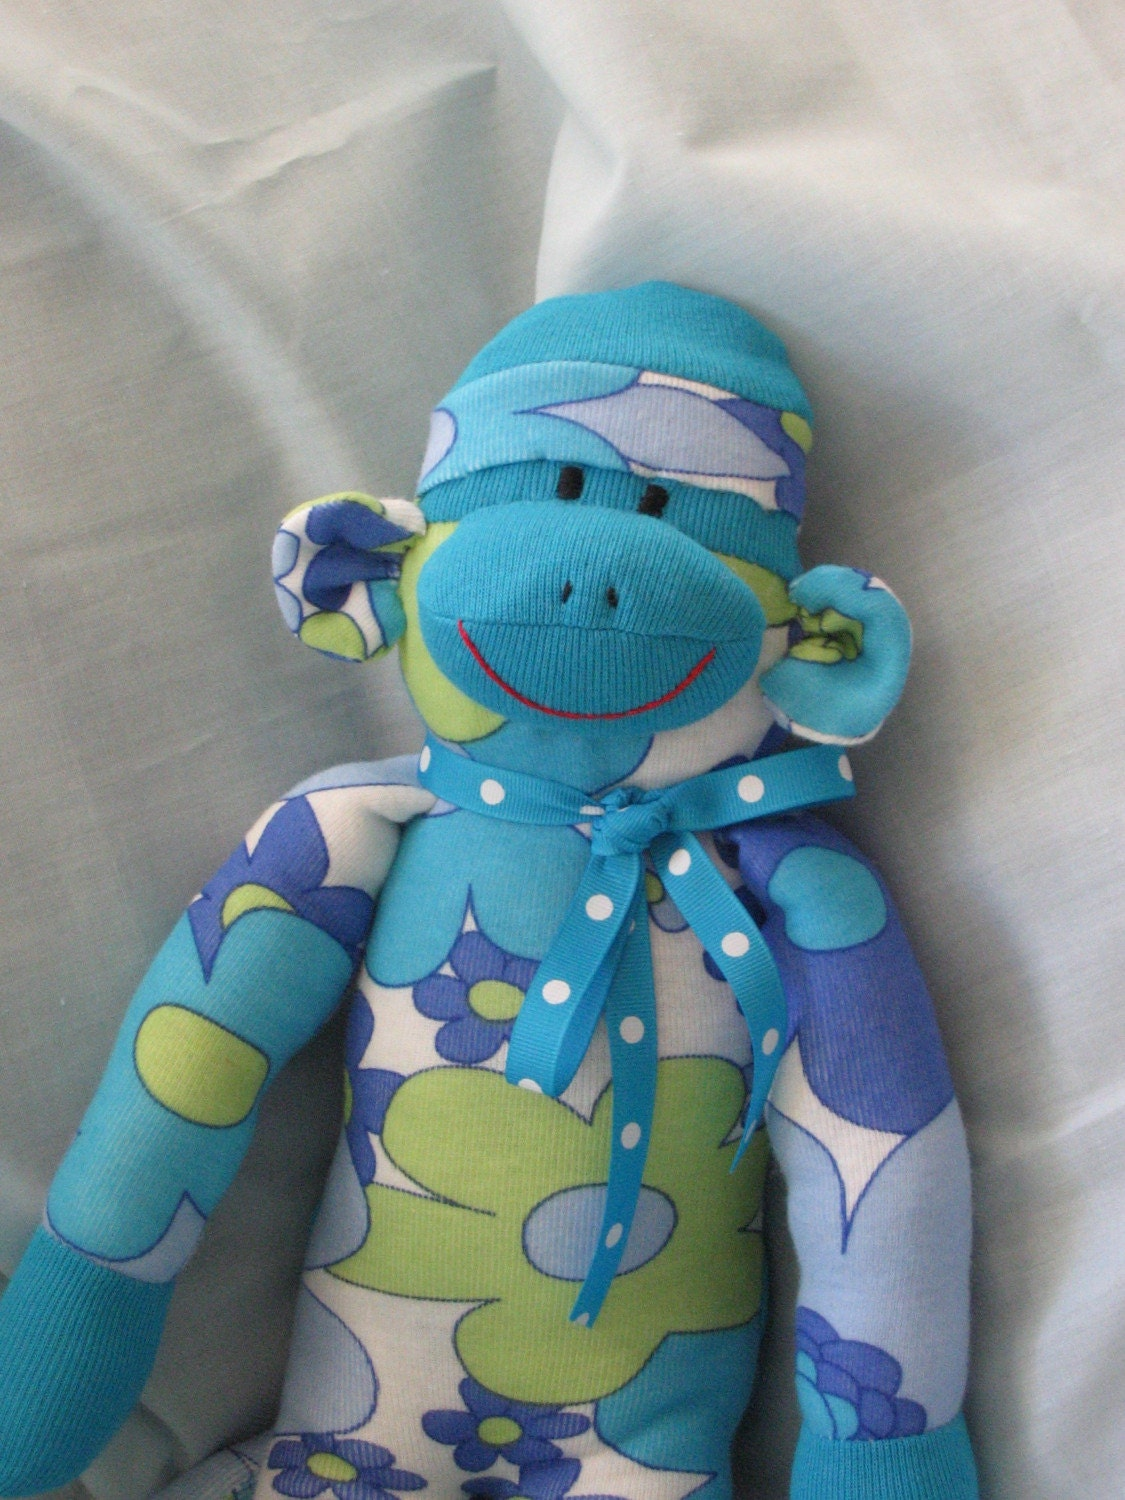 MONKEY SOCK DOLL. ADORABLE BRIGHT BLUE FLORAL PRINT MONKEY.  Cute, Bright, Colorful Blue Monkey Sock Doll in Cotton Lycra.  Very Soft.